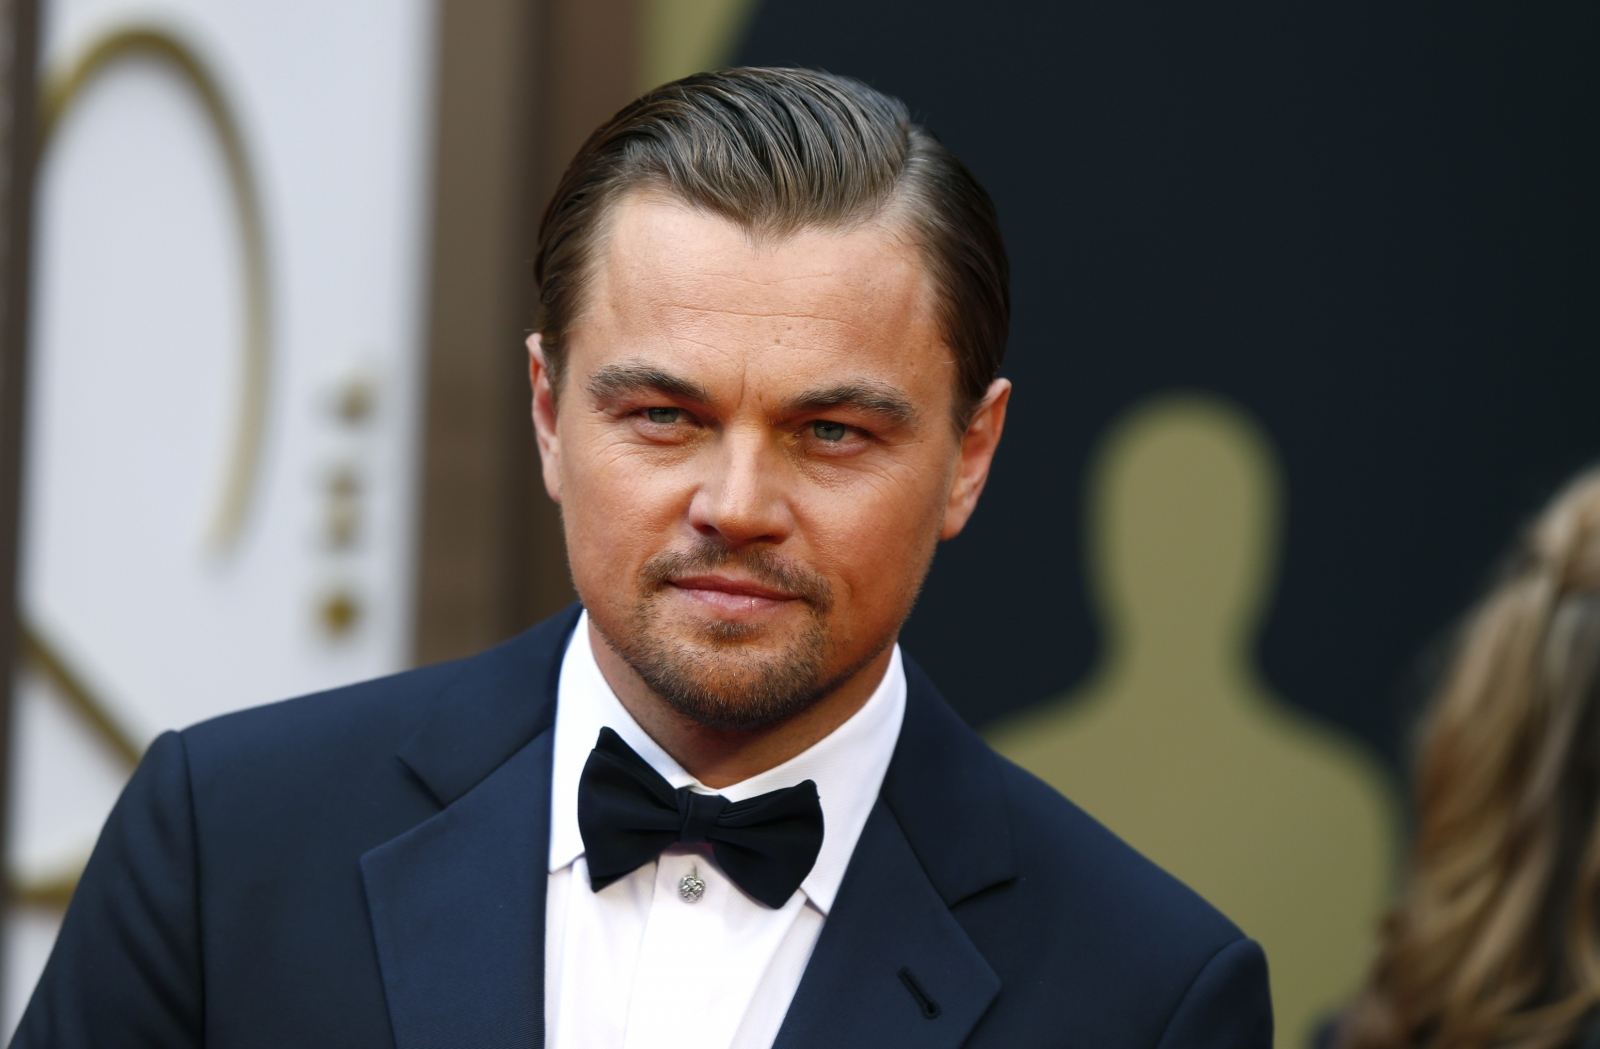 Climate change activist Leo DiCaprio is now implicated in an embezzlement scheme